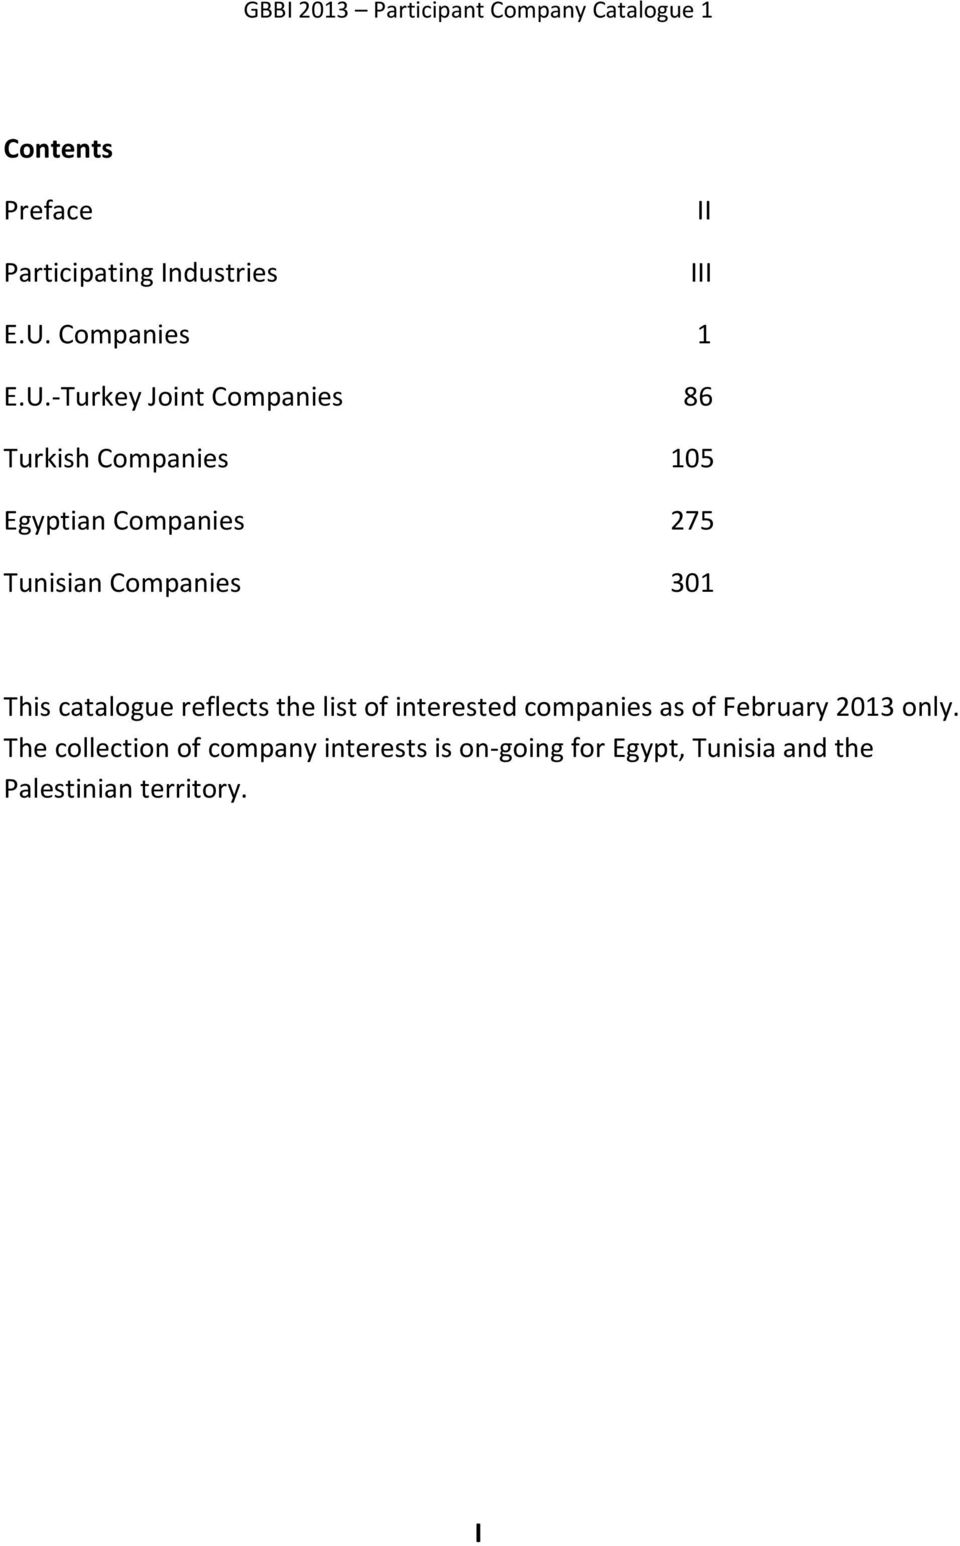 Turkey Joint Companies 86 Turkish Companies 105 Egyptian Companies 275 Tunisian